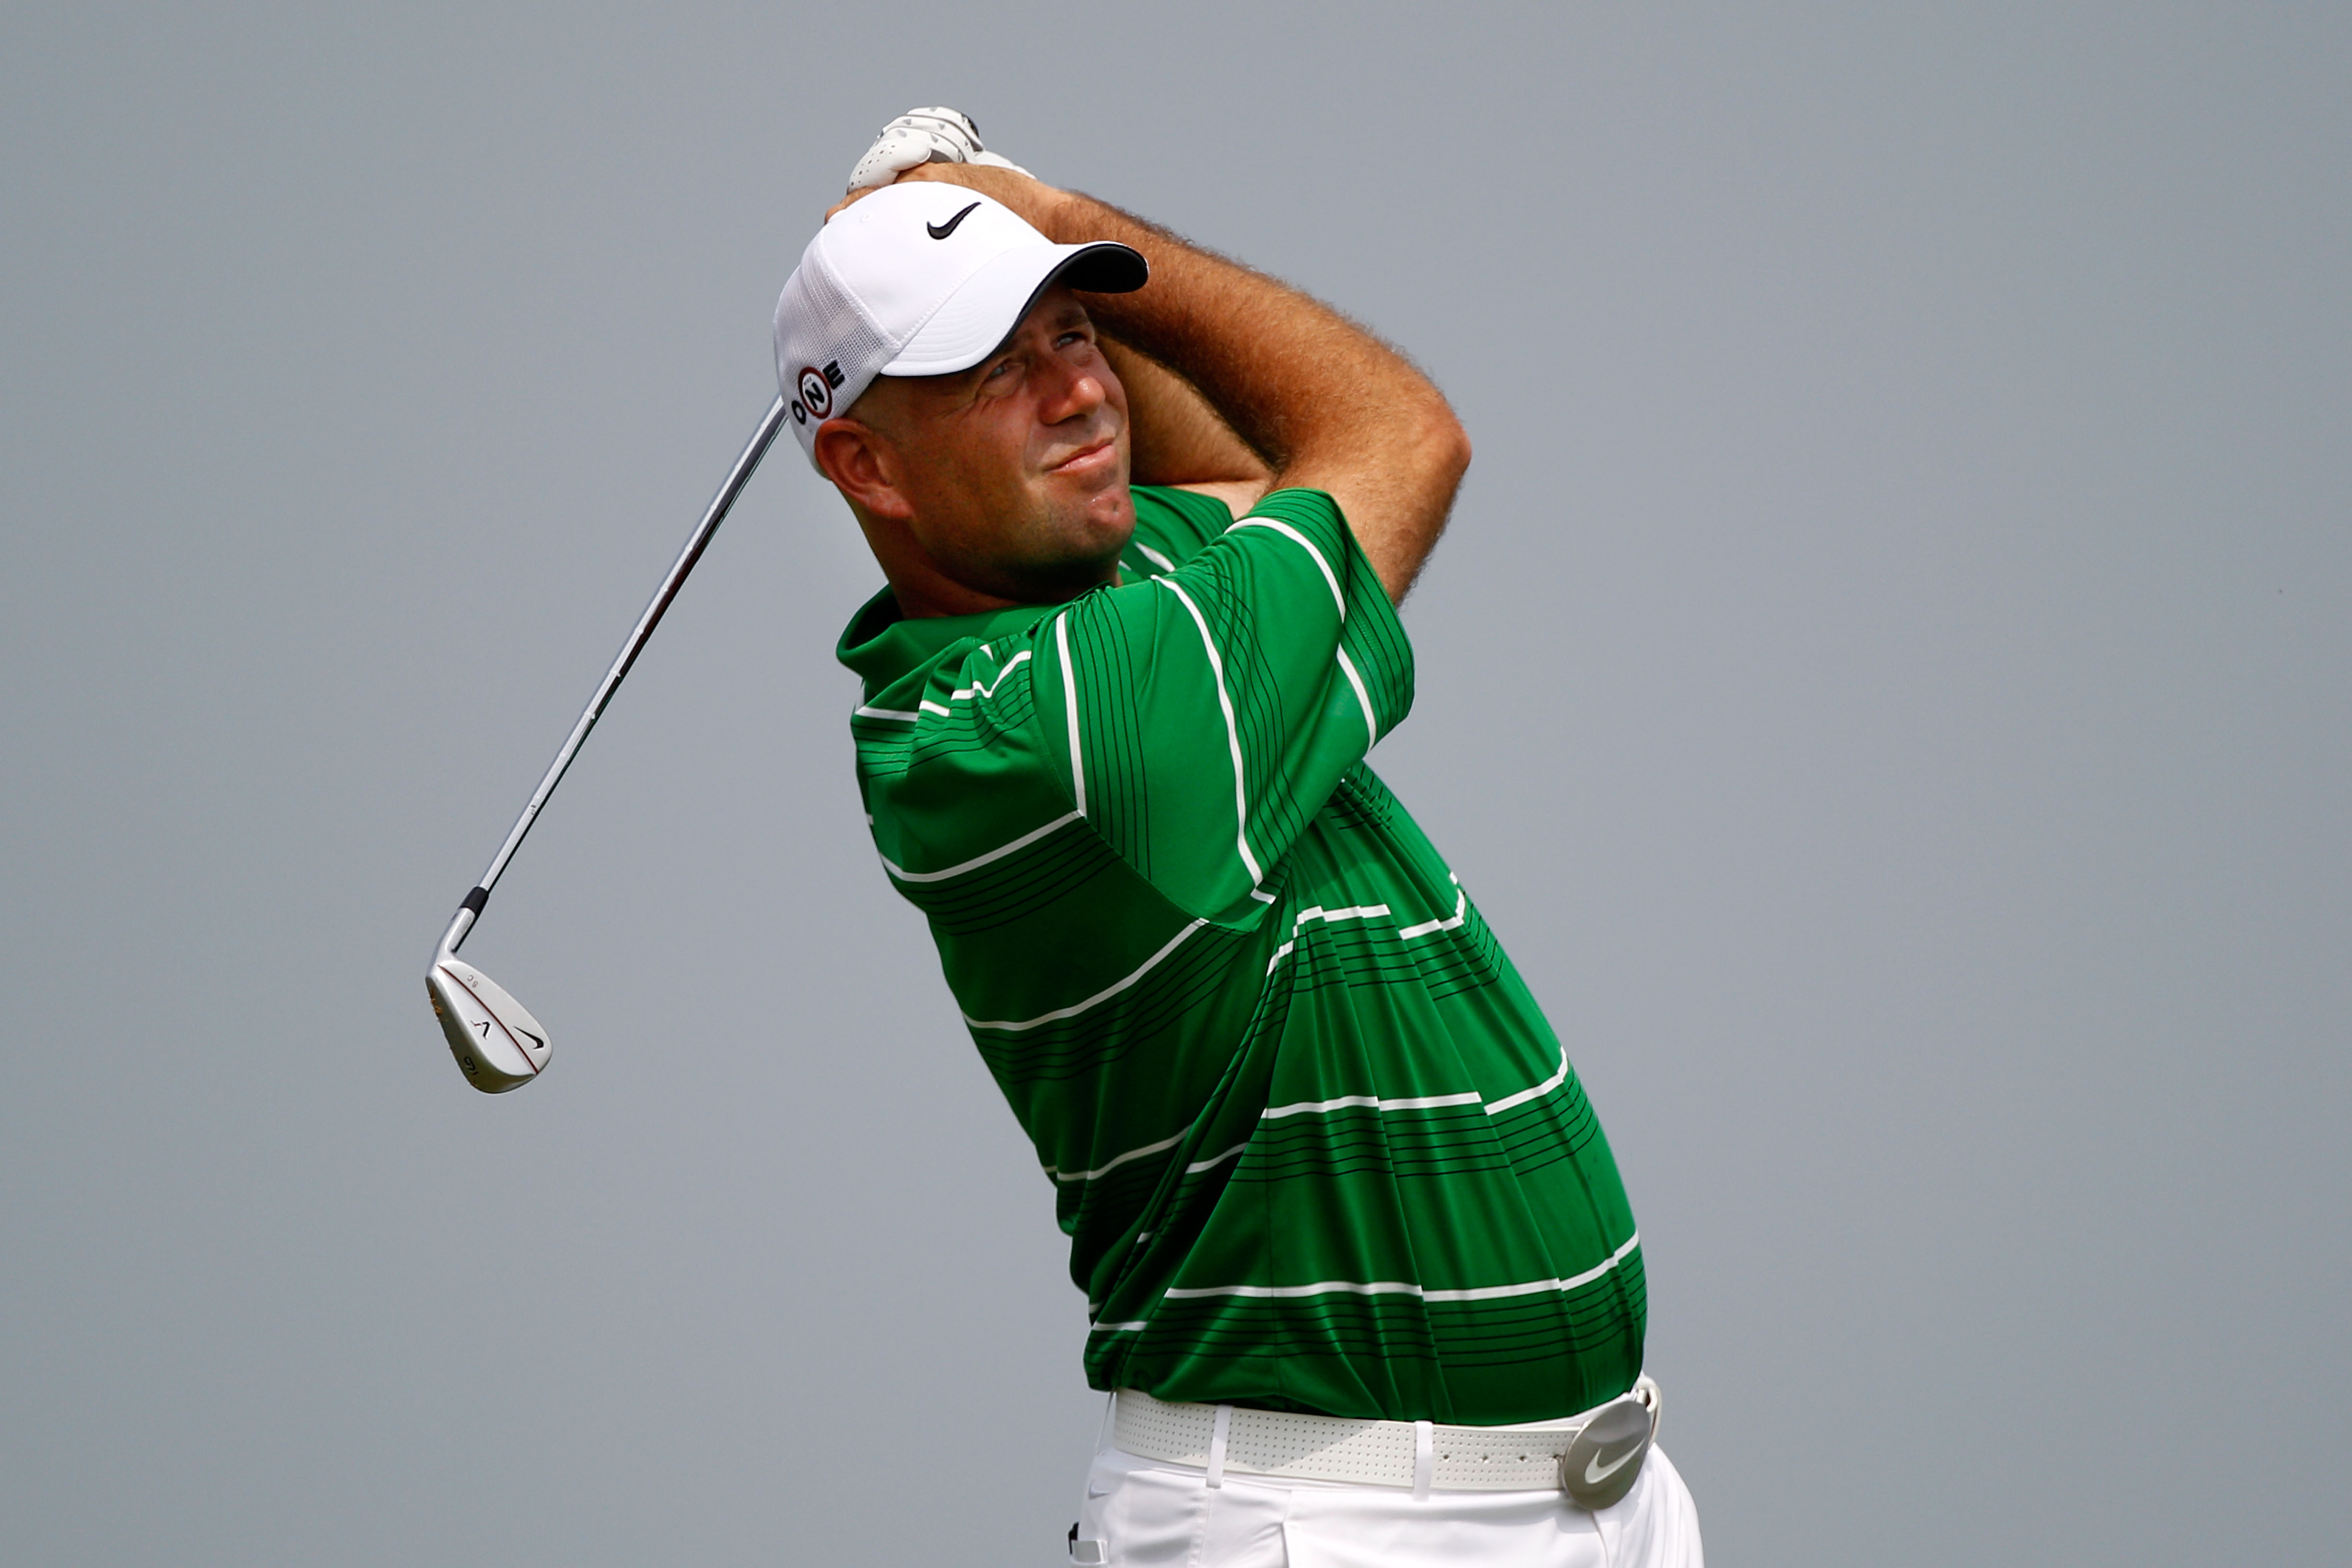 KOHLER, WI - AUGUST 10:  Stewart Cink in action during a practice round prior to the start of the 92nd PGA Championship on the Straits Course at Whistling Straits on August 10, 2010 in Kohler, Wisconsin.  (Photo by Chris Graythen/Getty Images)